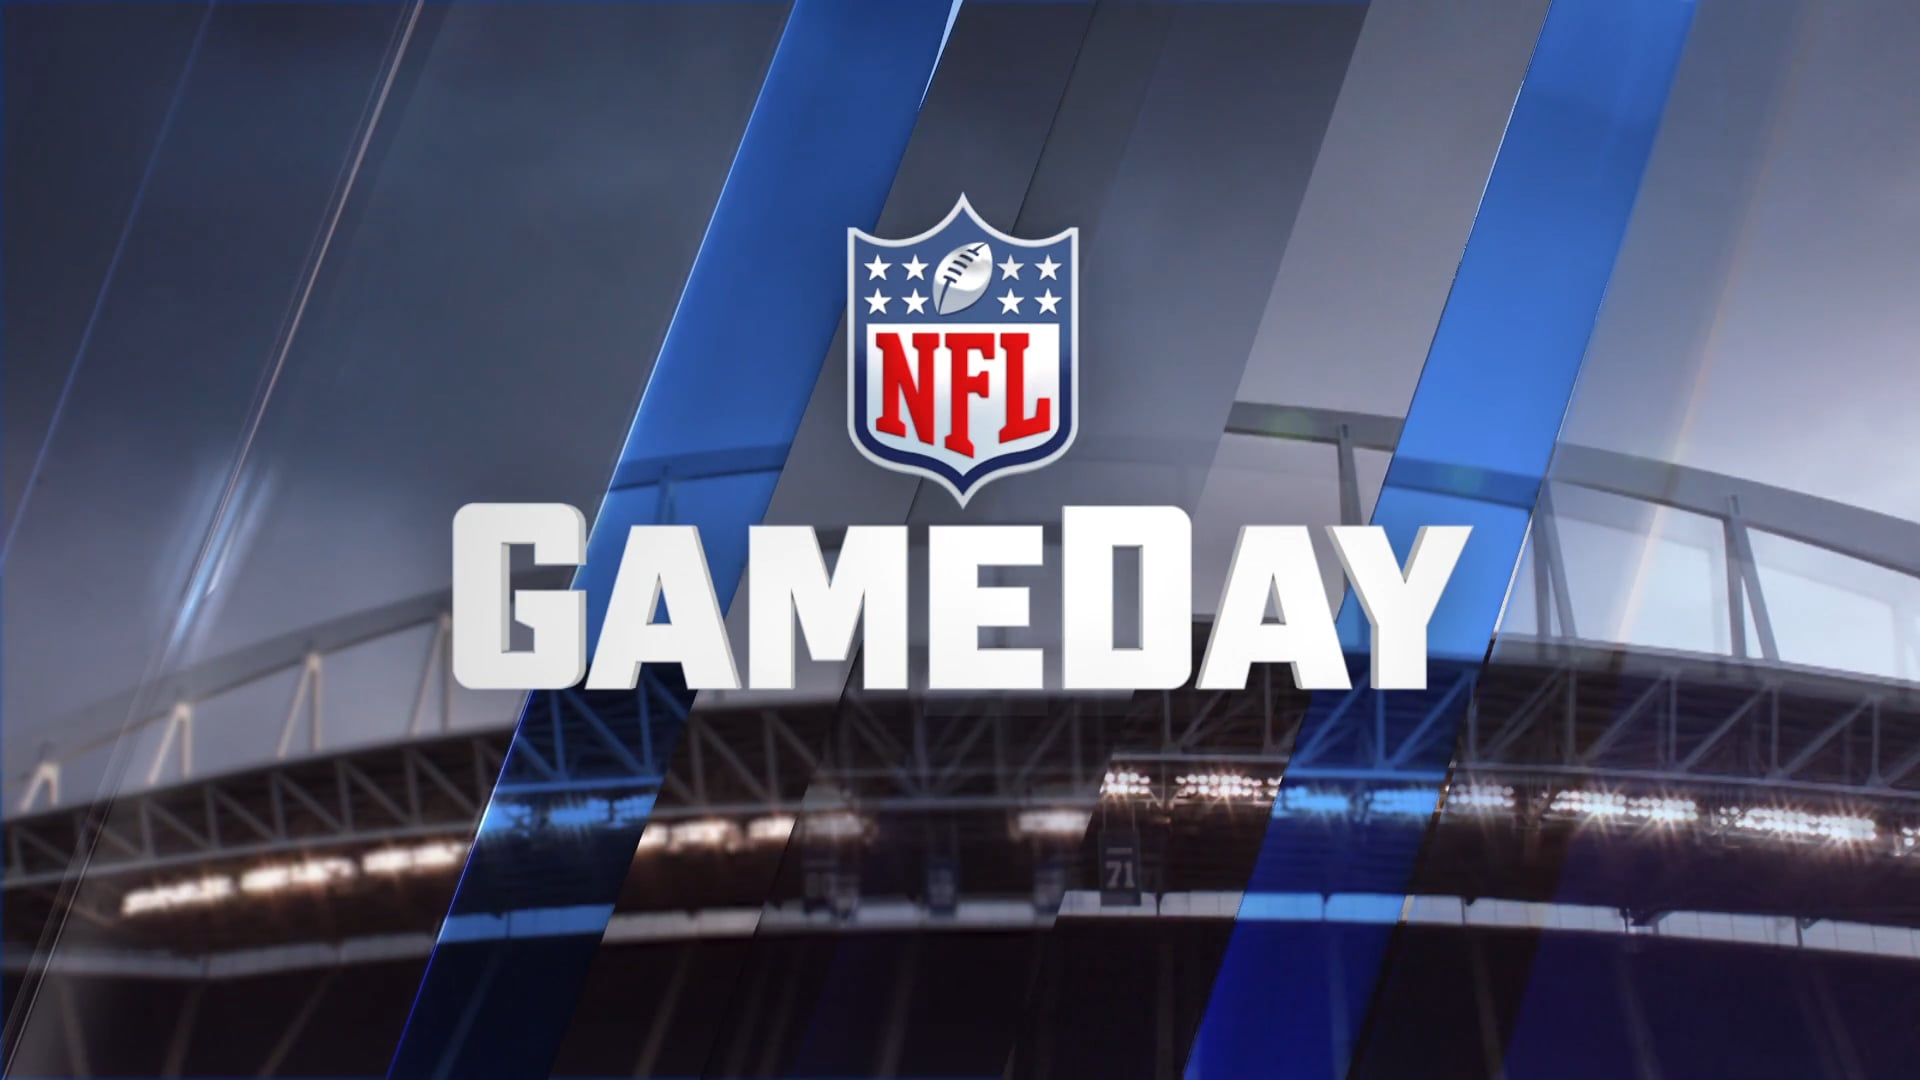 NFL Network Game Day Promo